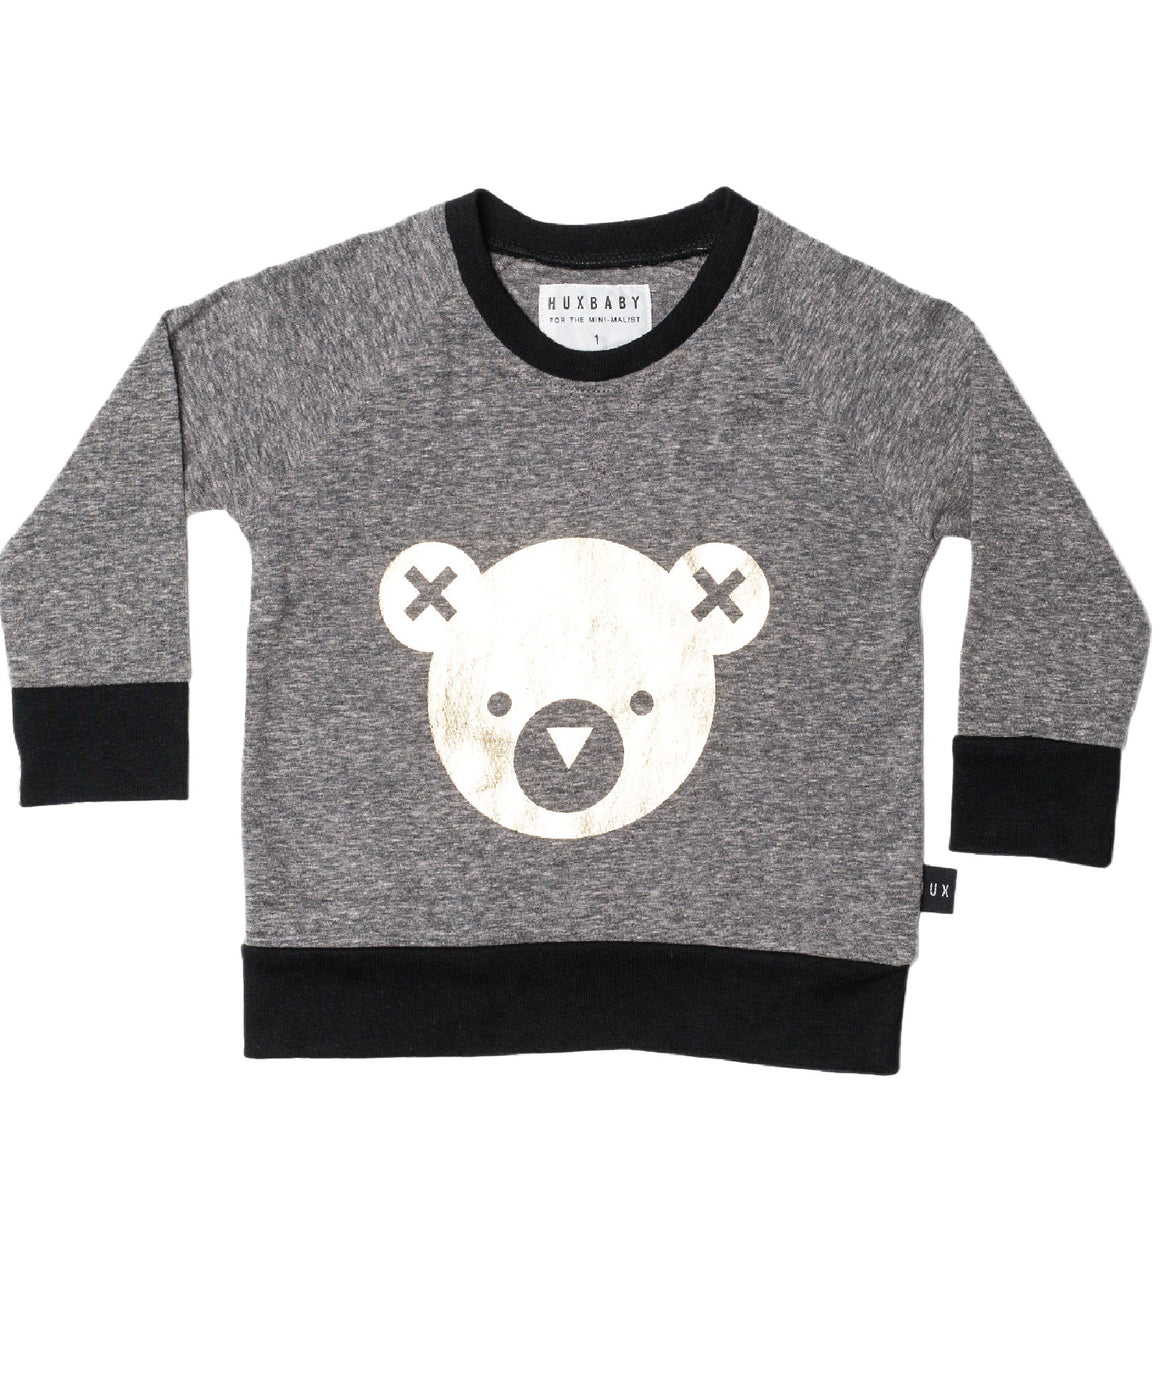 Hux Bear Sweater by HuxBaby